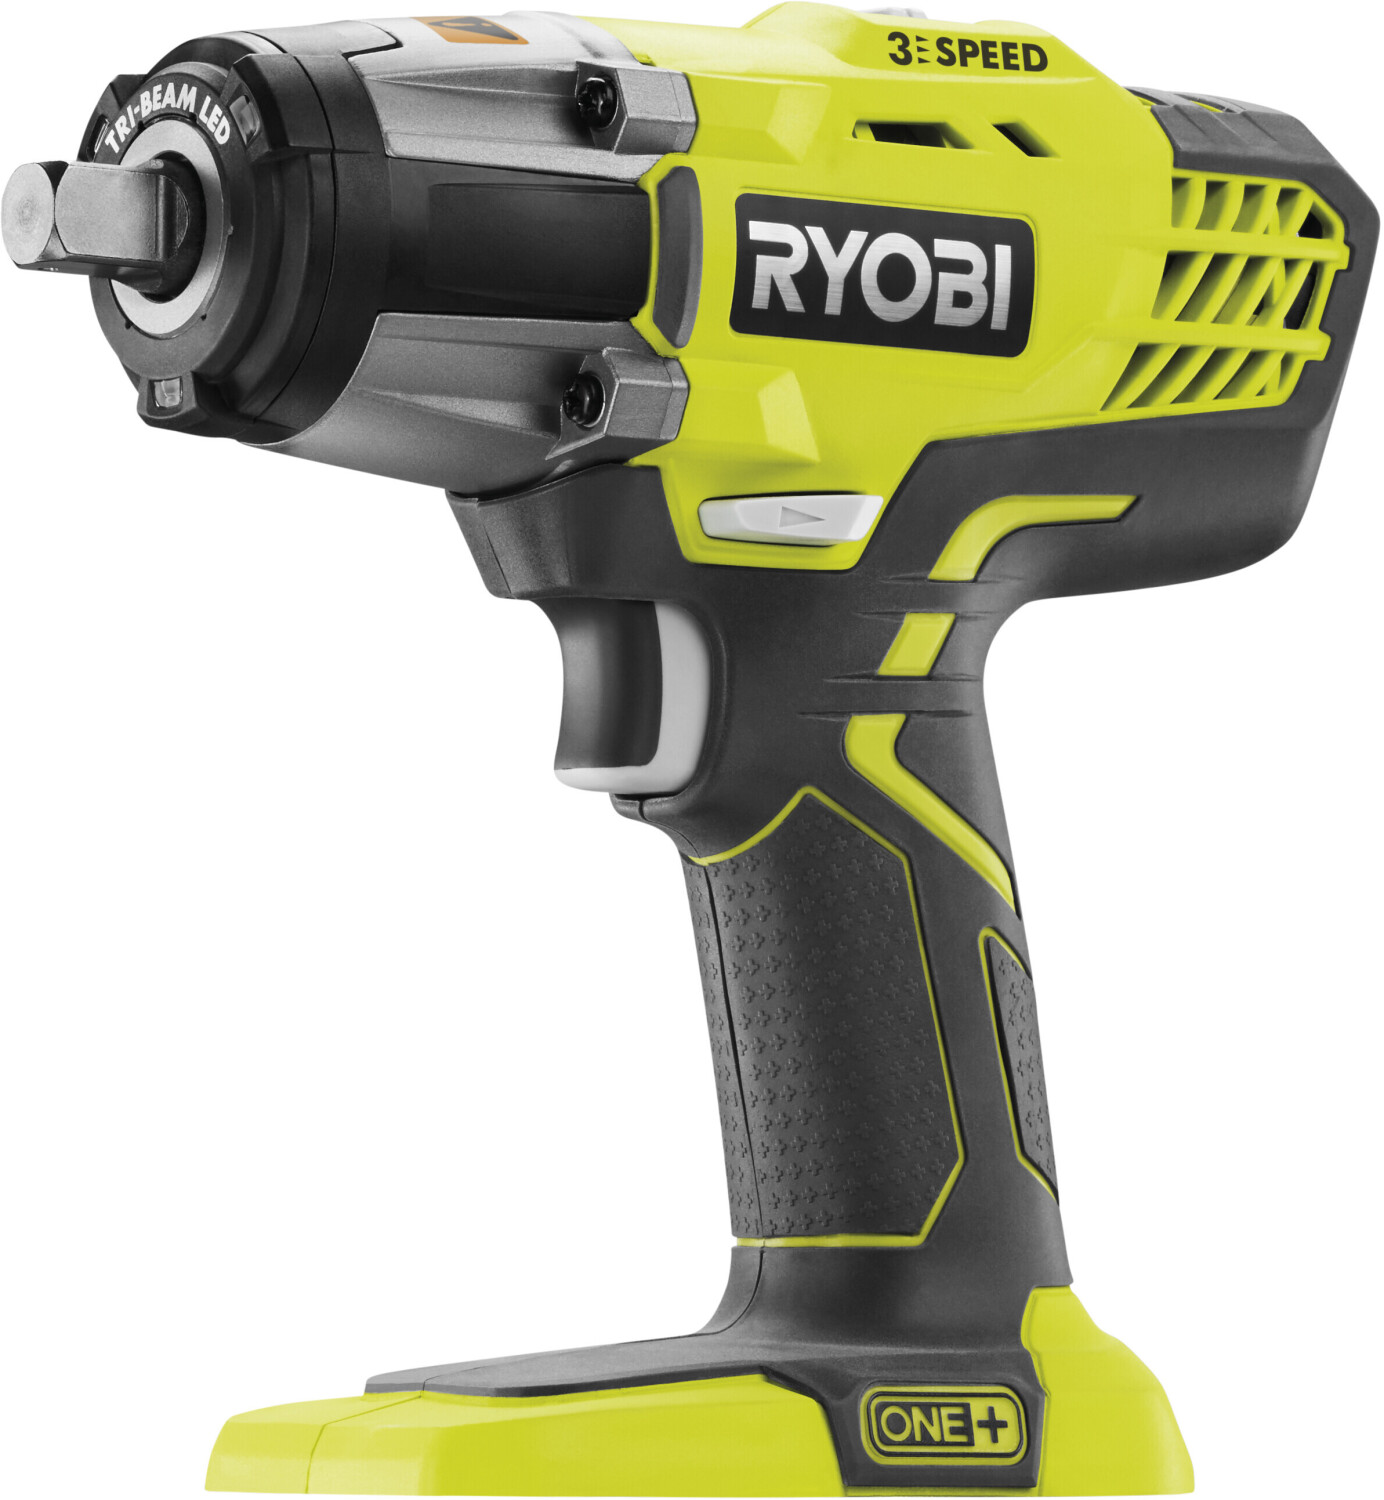 Ryobi One+ Cordless 18v Li-ion Impact Wrench R18iw3-0 - Body Only